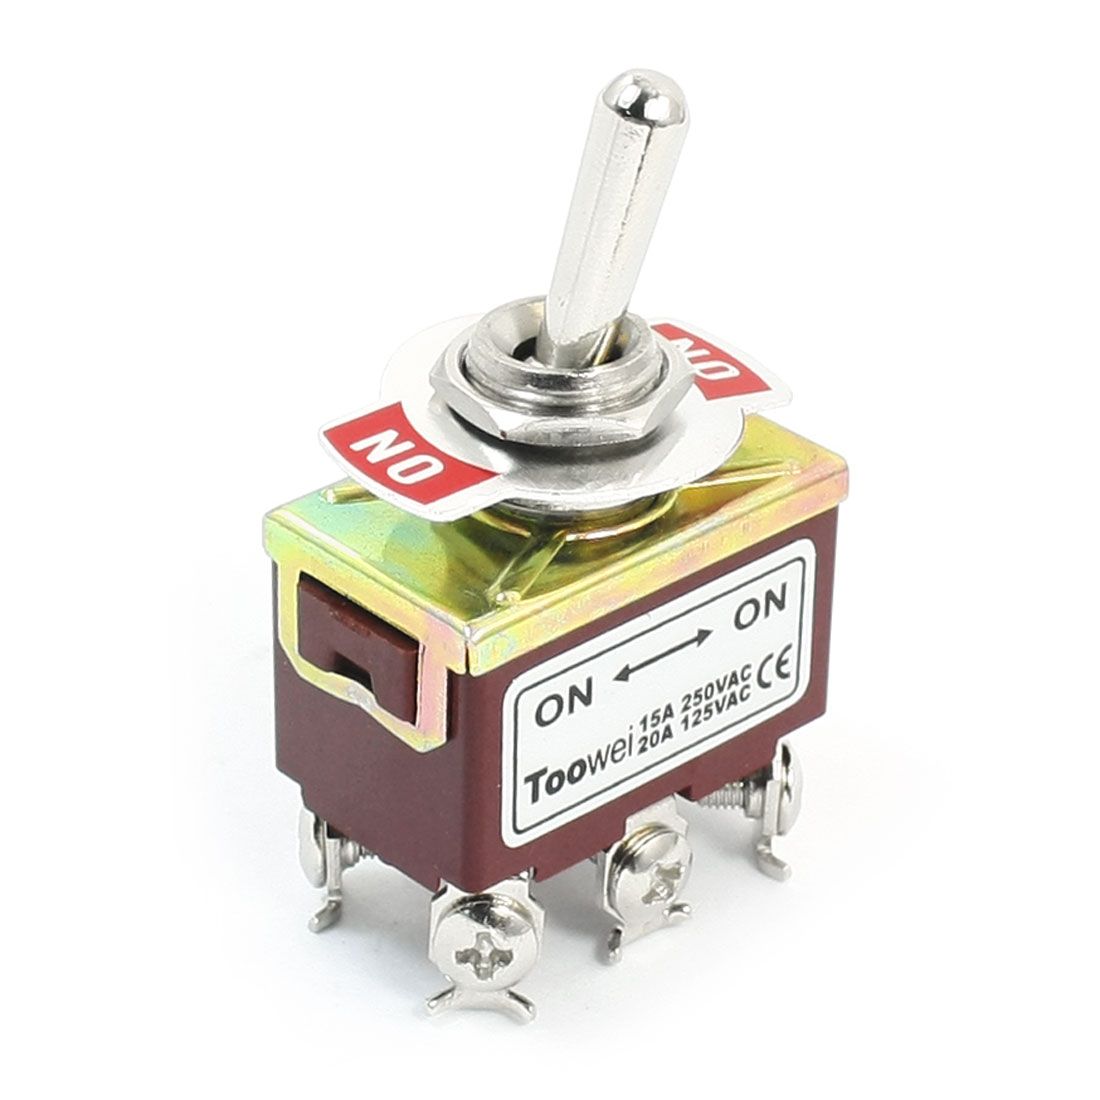 ON/ON 6 Screw Terminals Latching Power Control Toggle Switch AC 125V 20A T702BW